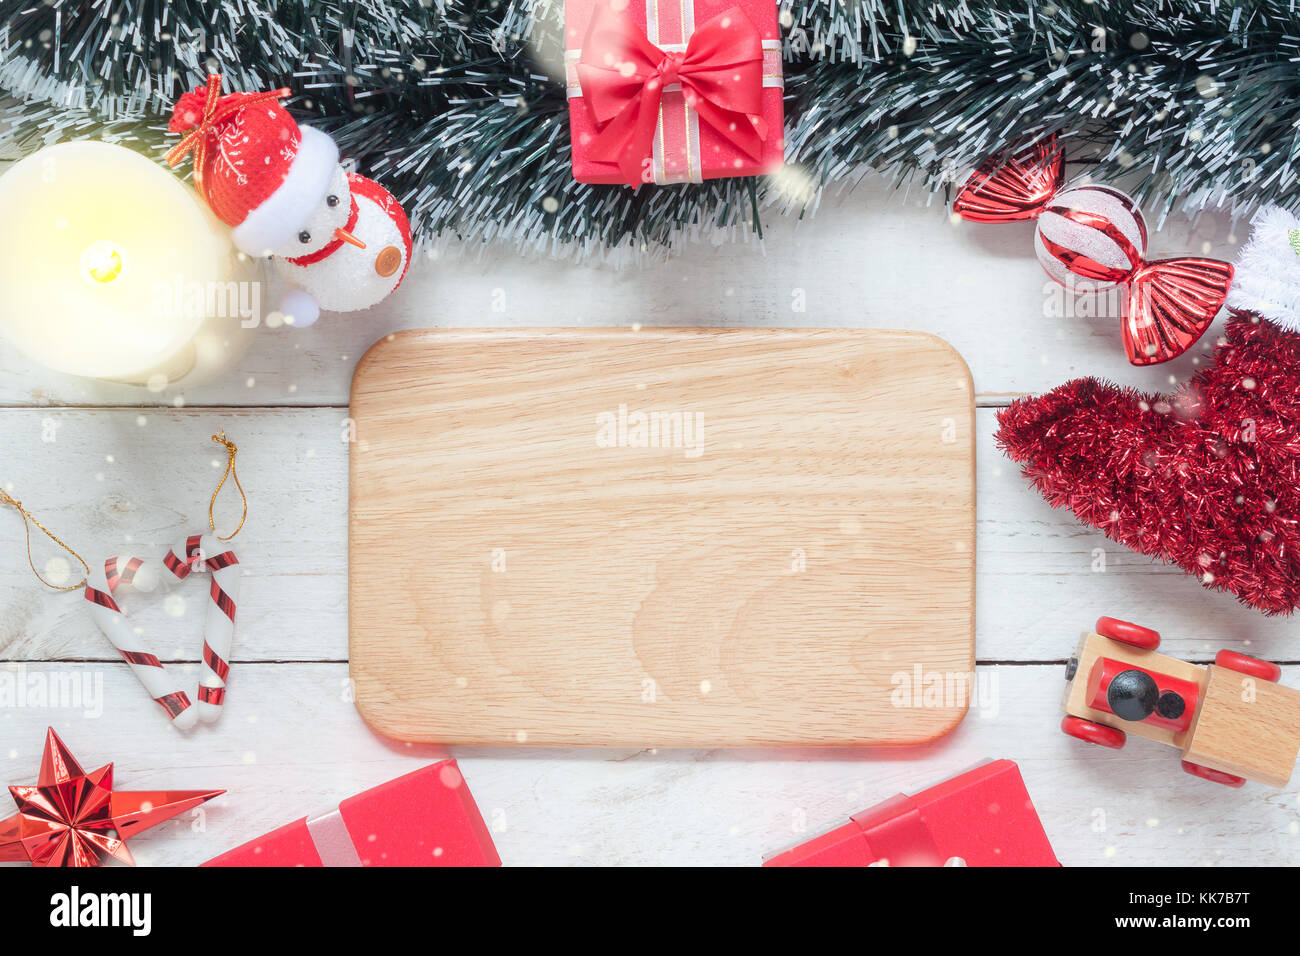 c8alamycomcompkk7b7tabove view aerial image o - Essential Christmas Decorations